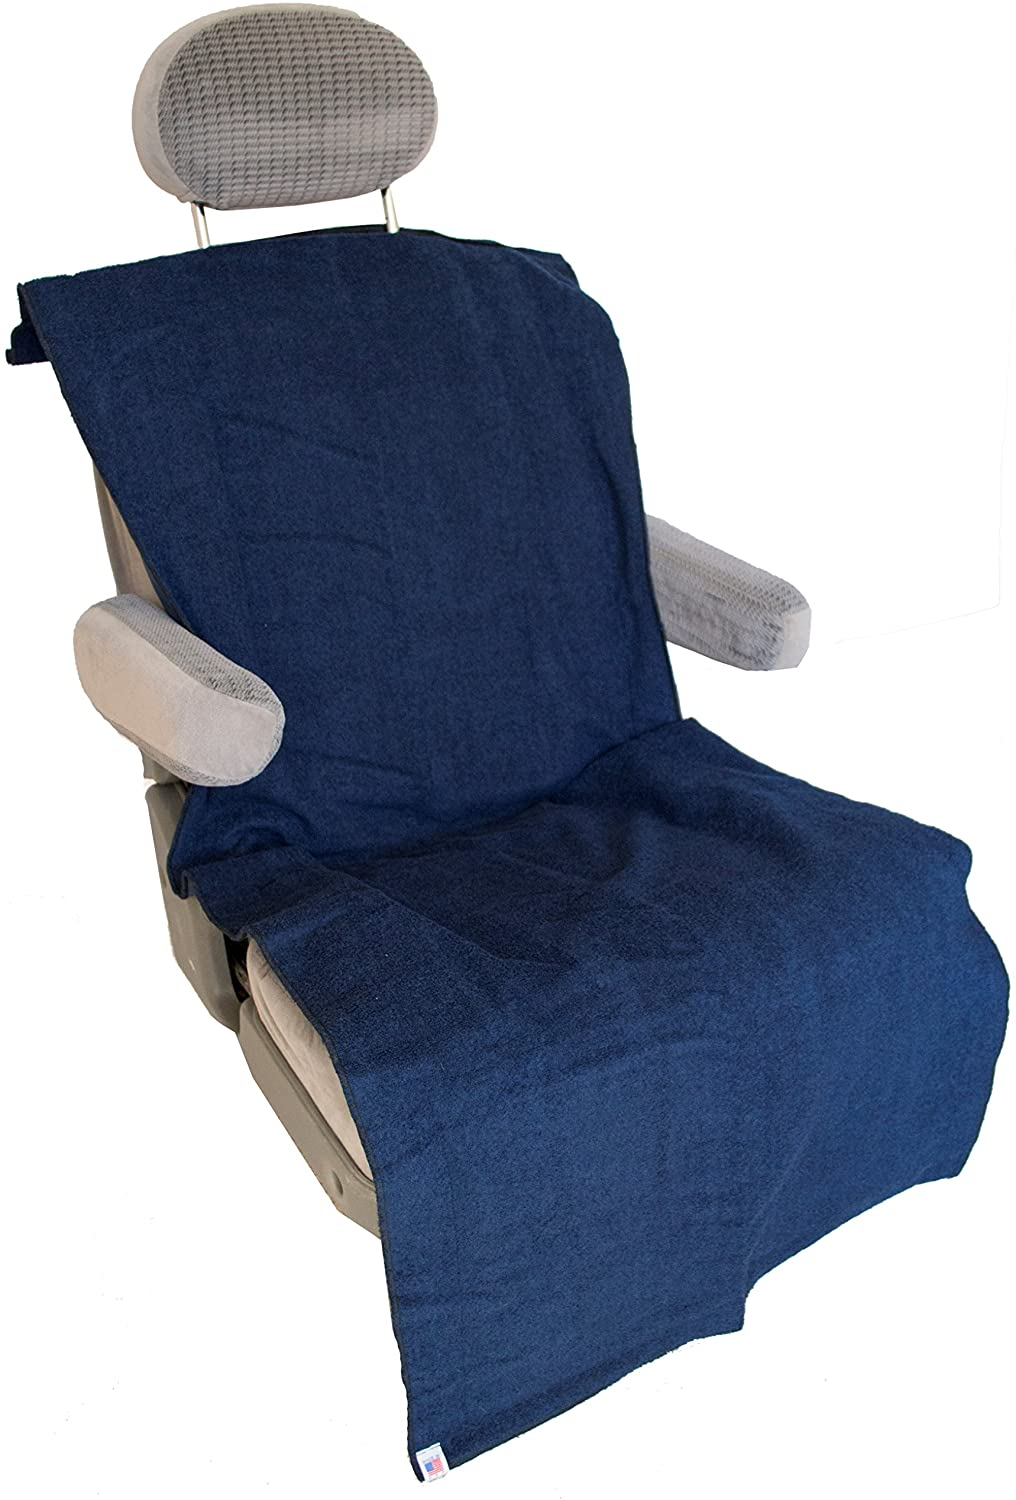 Soaked Or Dirty Athletes (SODA) Standard Seat Cover - Absorbent, Waterproof, Machine Wash & Dry, Bucket or Bench Seat, Made in USA